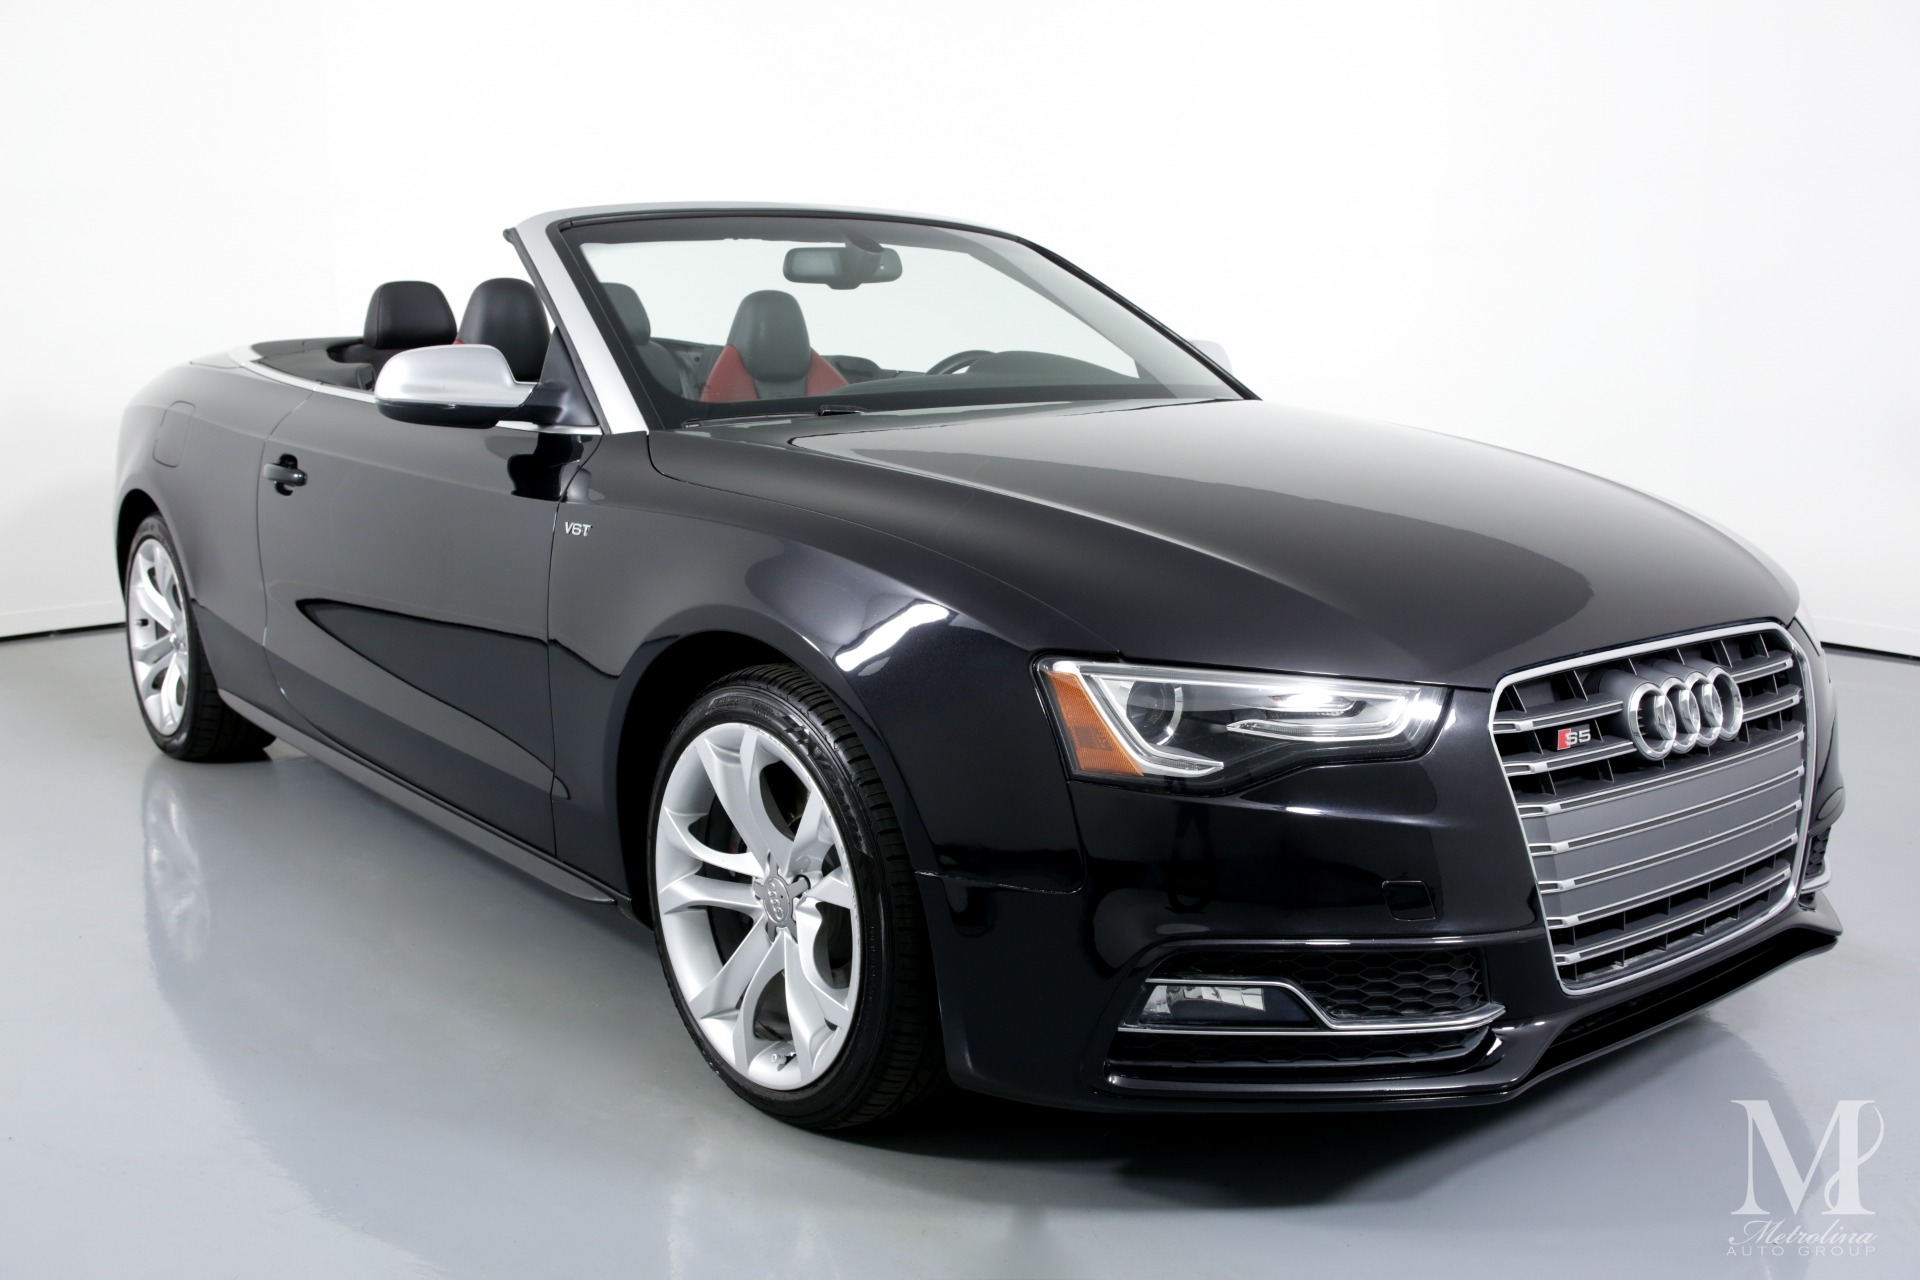 Used 2014 Audi S5 3.0T quattro Premium Plus AWD 2dr Convertible for sale $24,995 at Metrolina Auto Group in Charlotte NC 28217 - 3